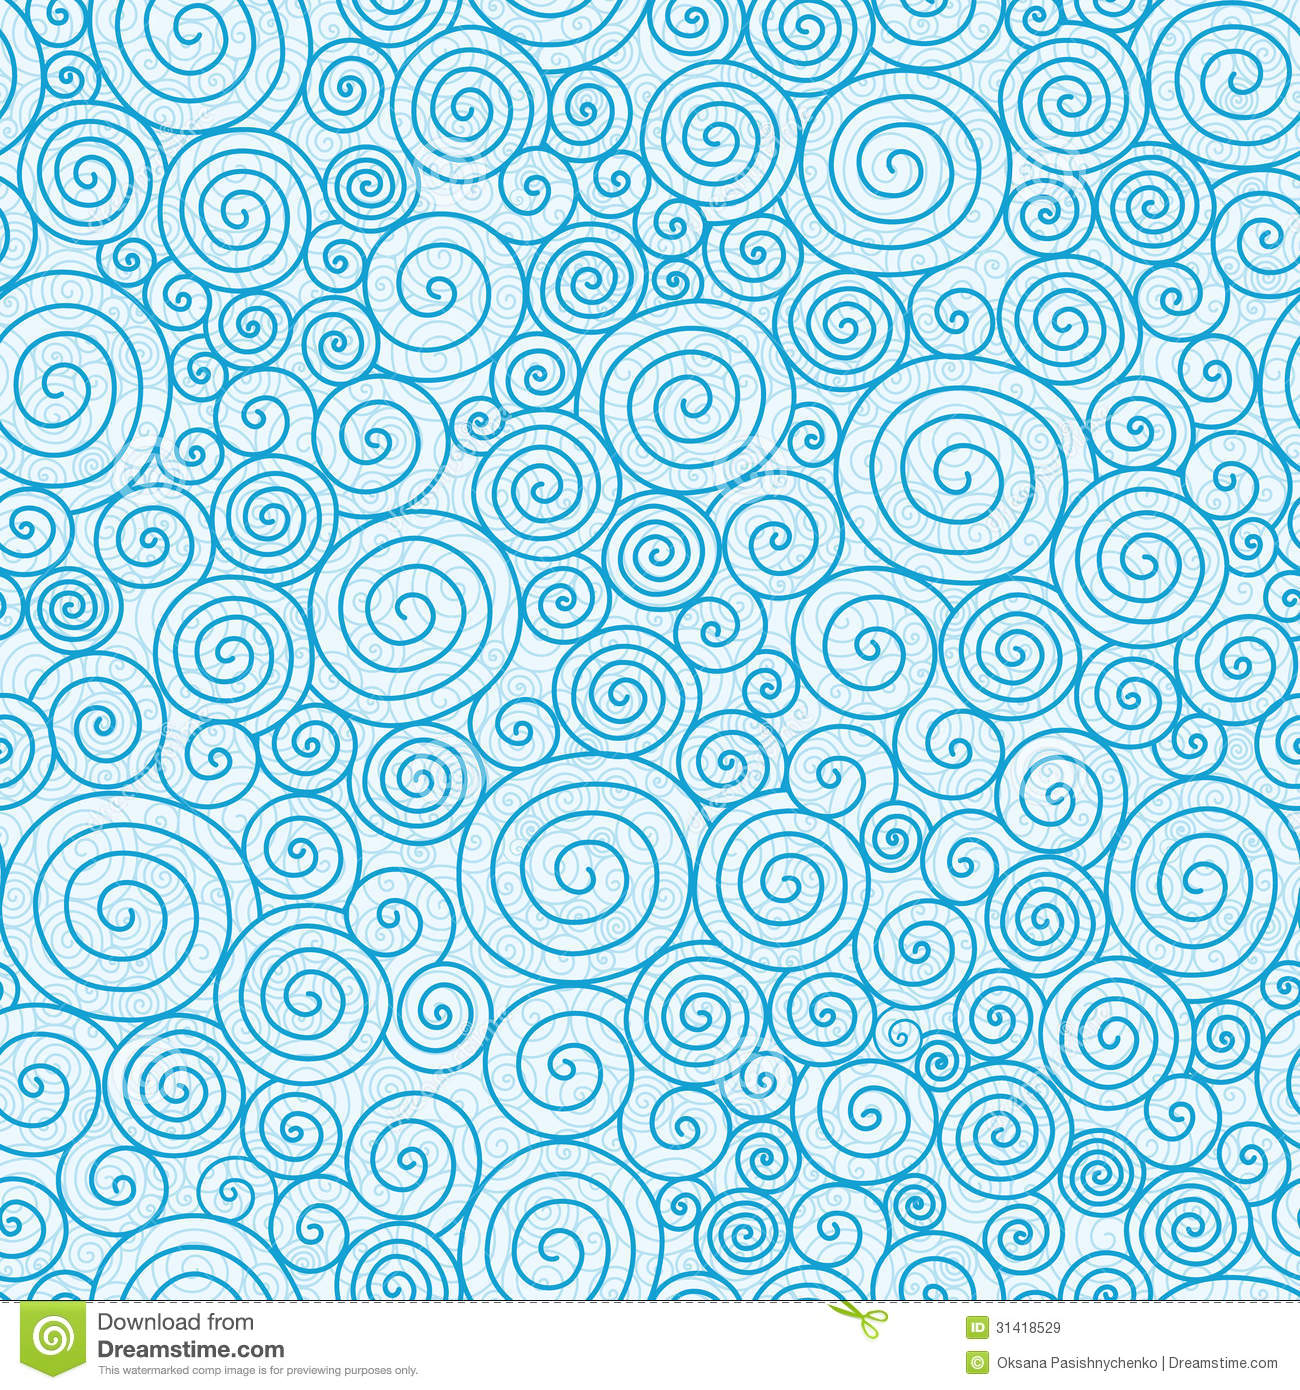 Swirl background pattern - photo#6